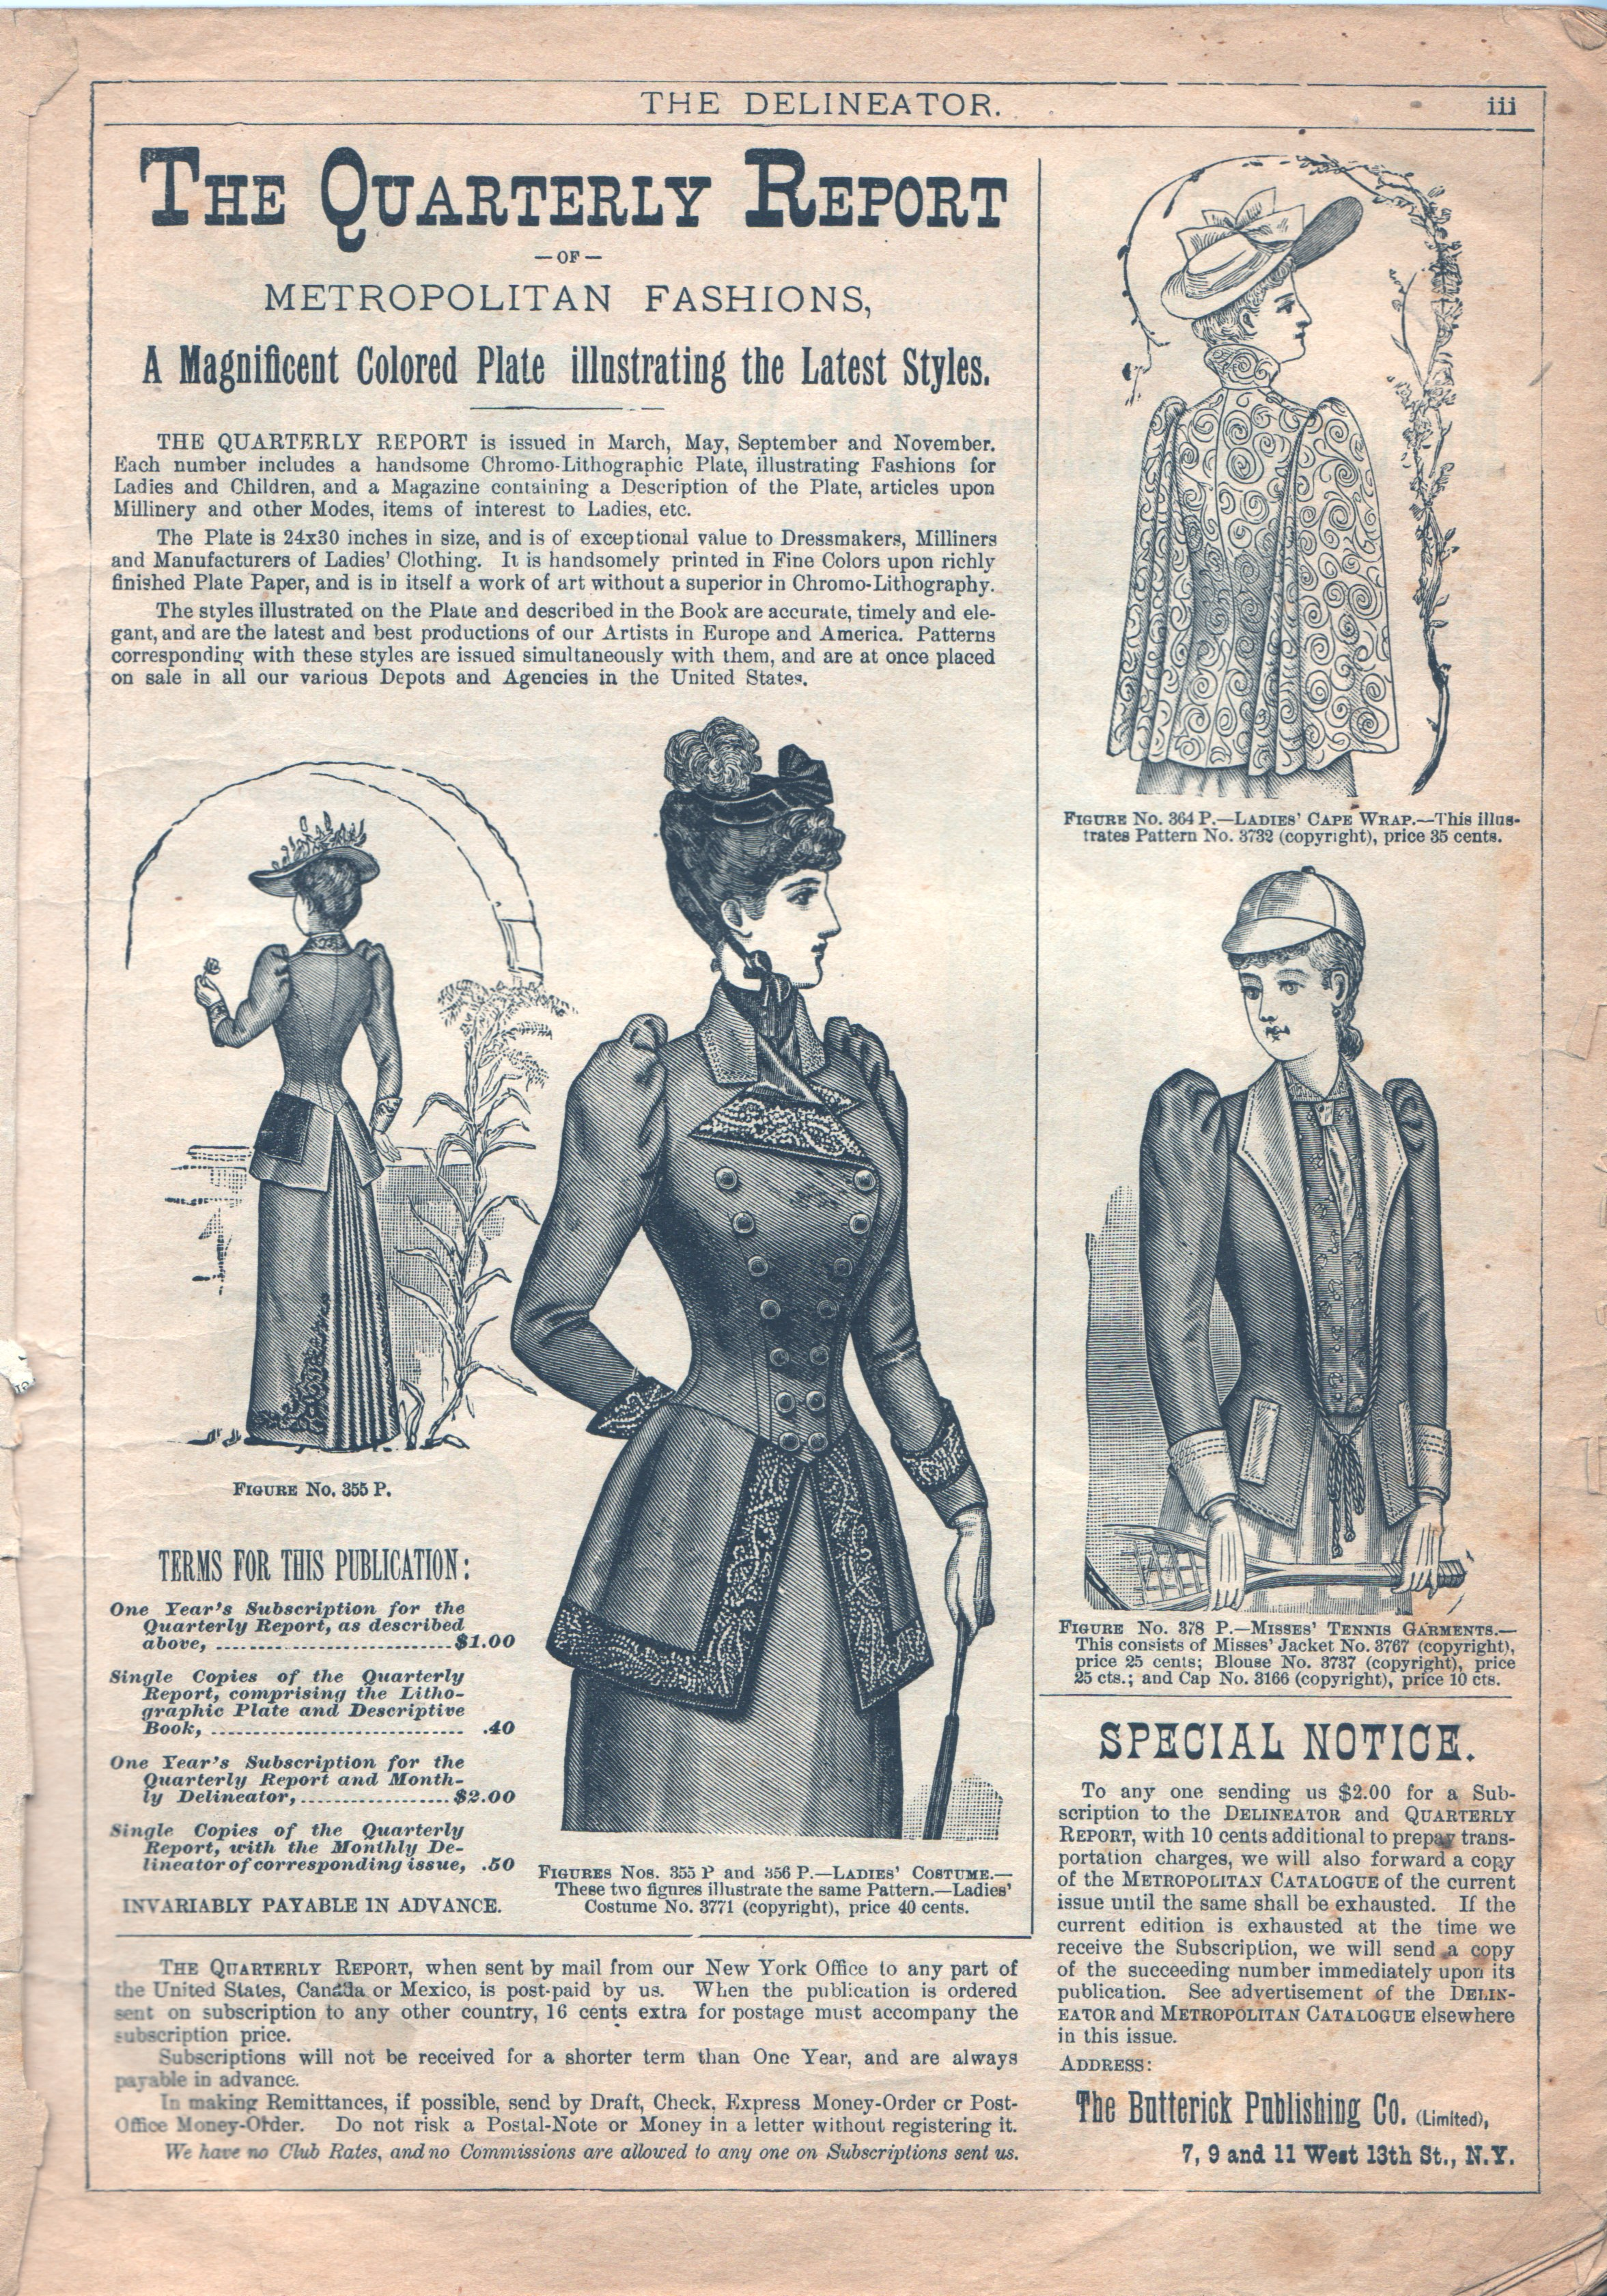 blouse, victorian blouse, old fashion blouse,   dress, victorian dress, old fashion dress,   clothes, victorian clothes, old fashion clothes, suit